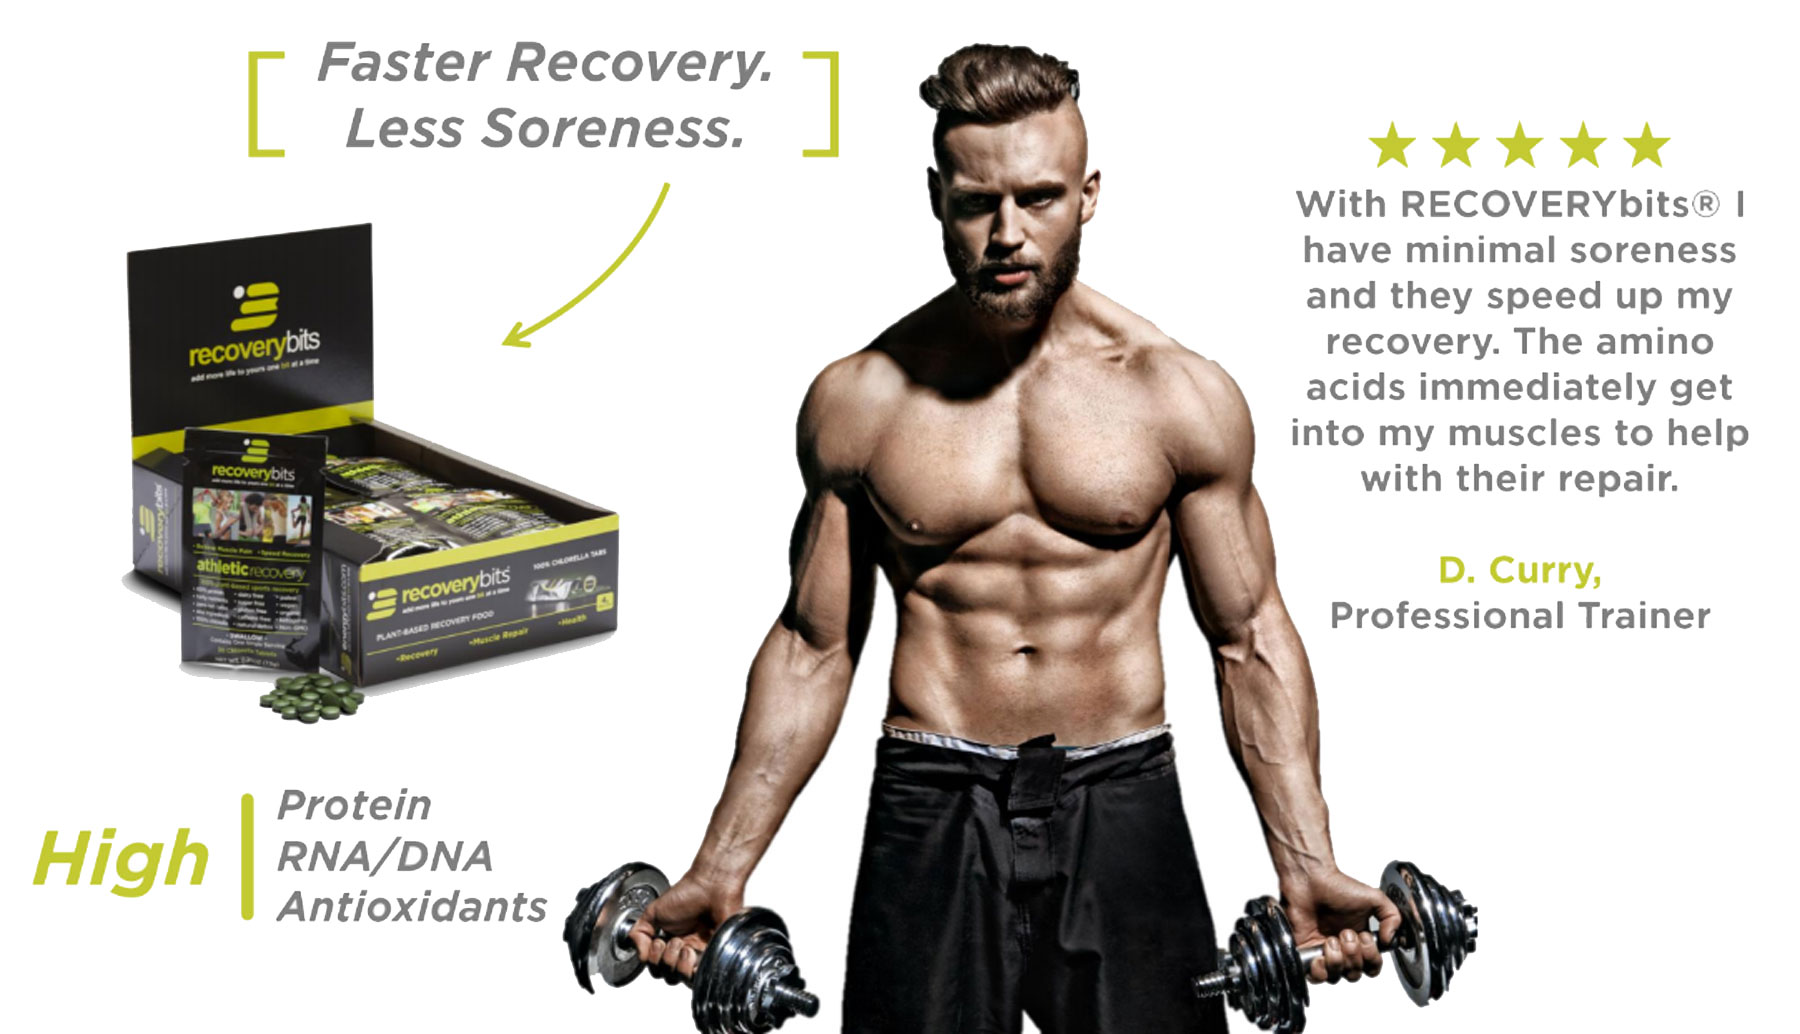 recoverybits athletic recovery testimonial